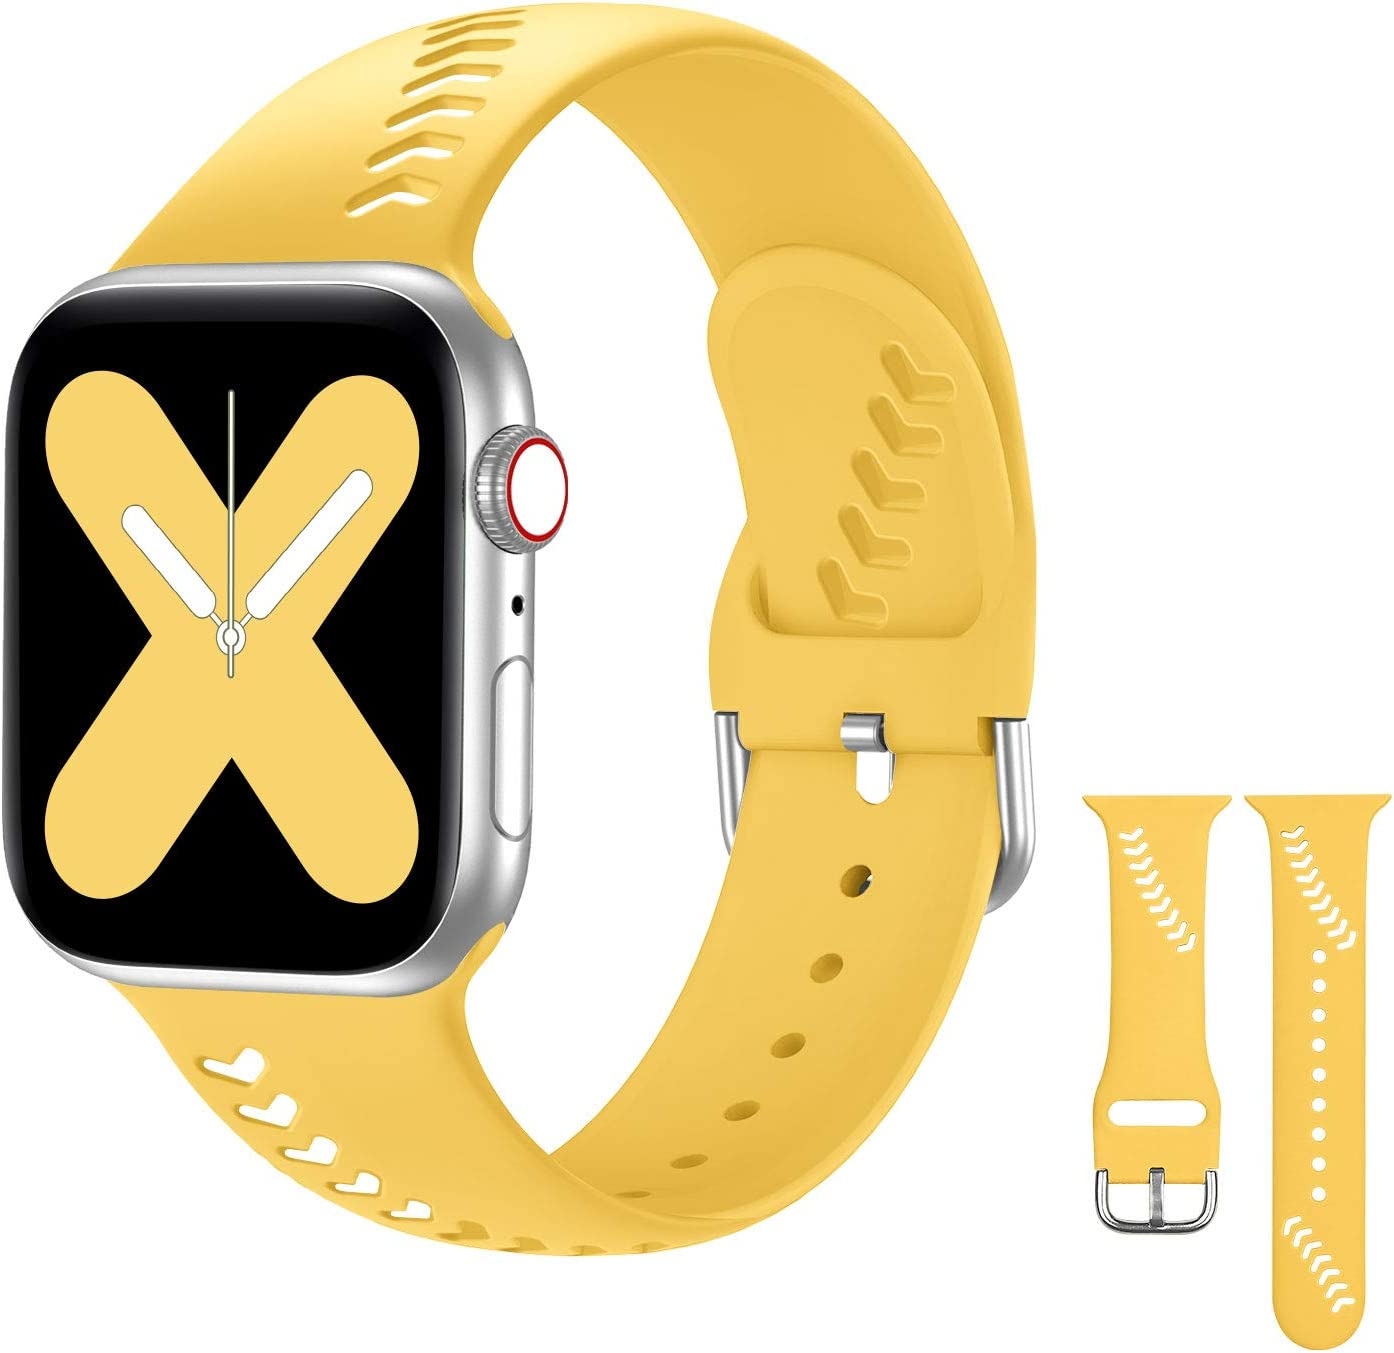 Doasuwish Compatible with Apple Watch Band 38mm 40mm, Soft Silicone Hollowed Baseball Pattern iWatch Bands Replacement Strap Compatible for Apple Watch Series 6/SE/5/4/3/2/1, Sport Edition, Yellow